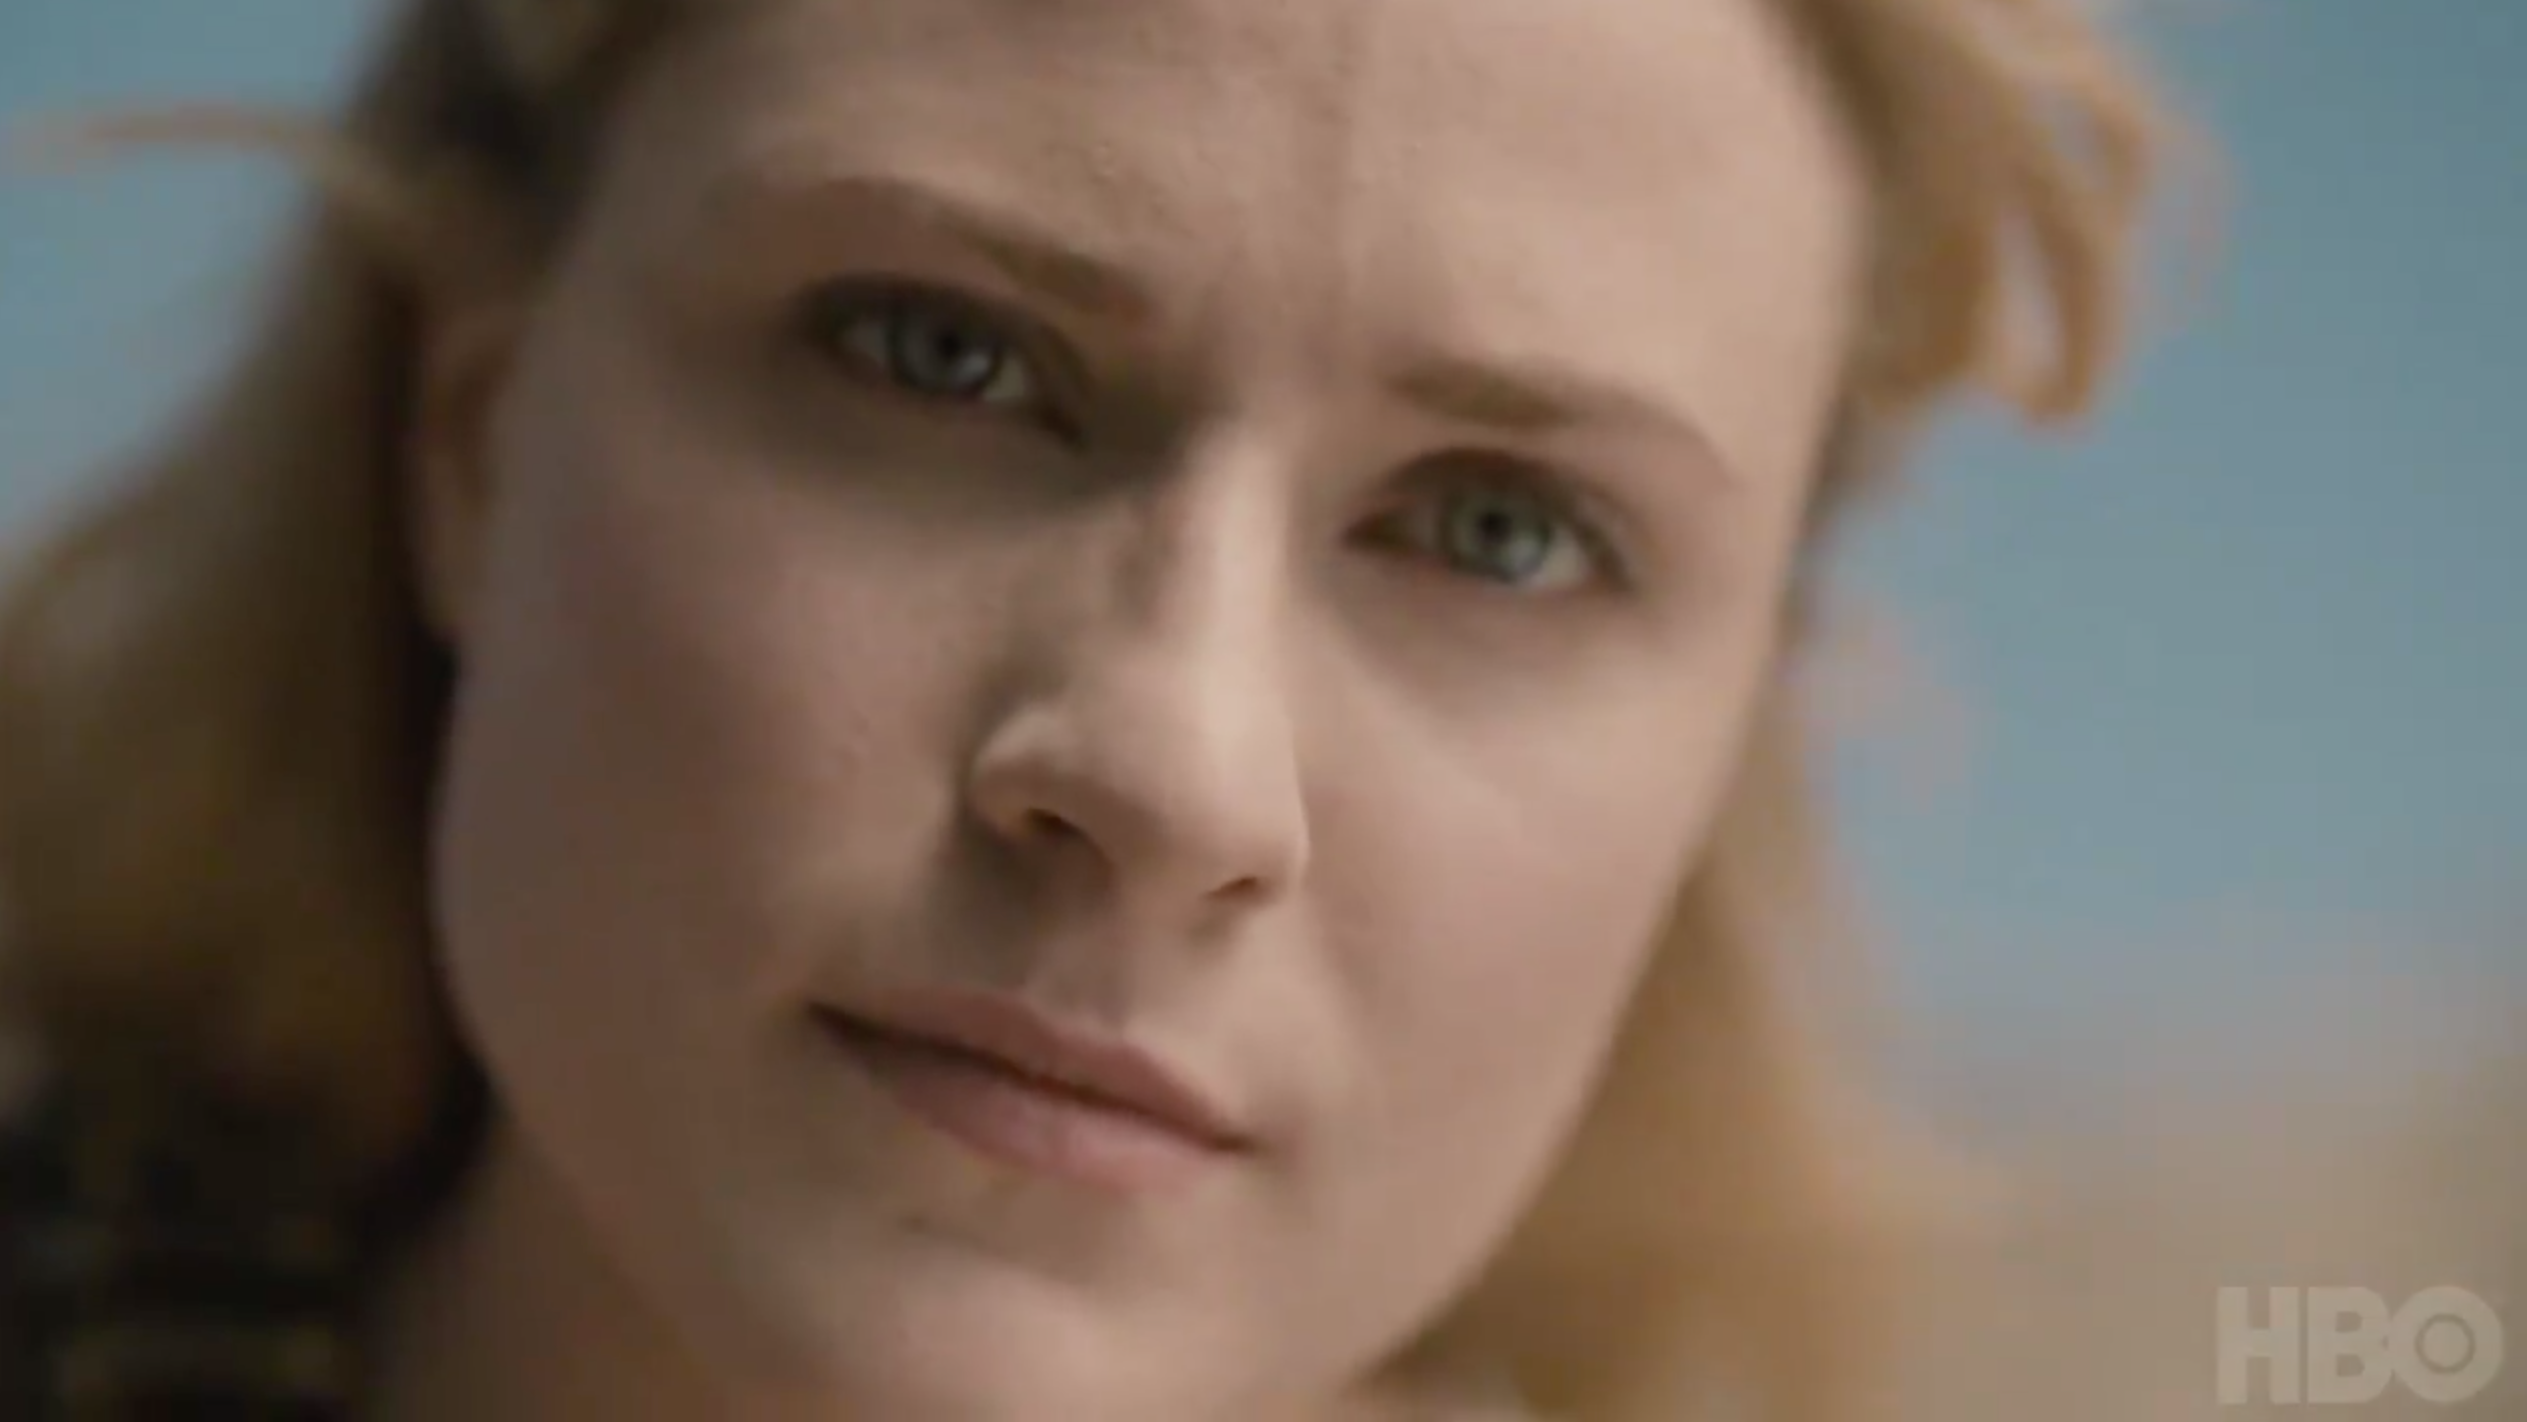 Sinners, Welcome To The Westworld Season 2 Trailer